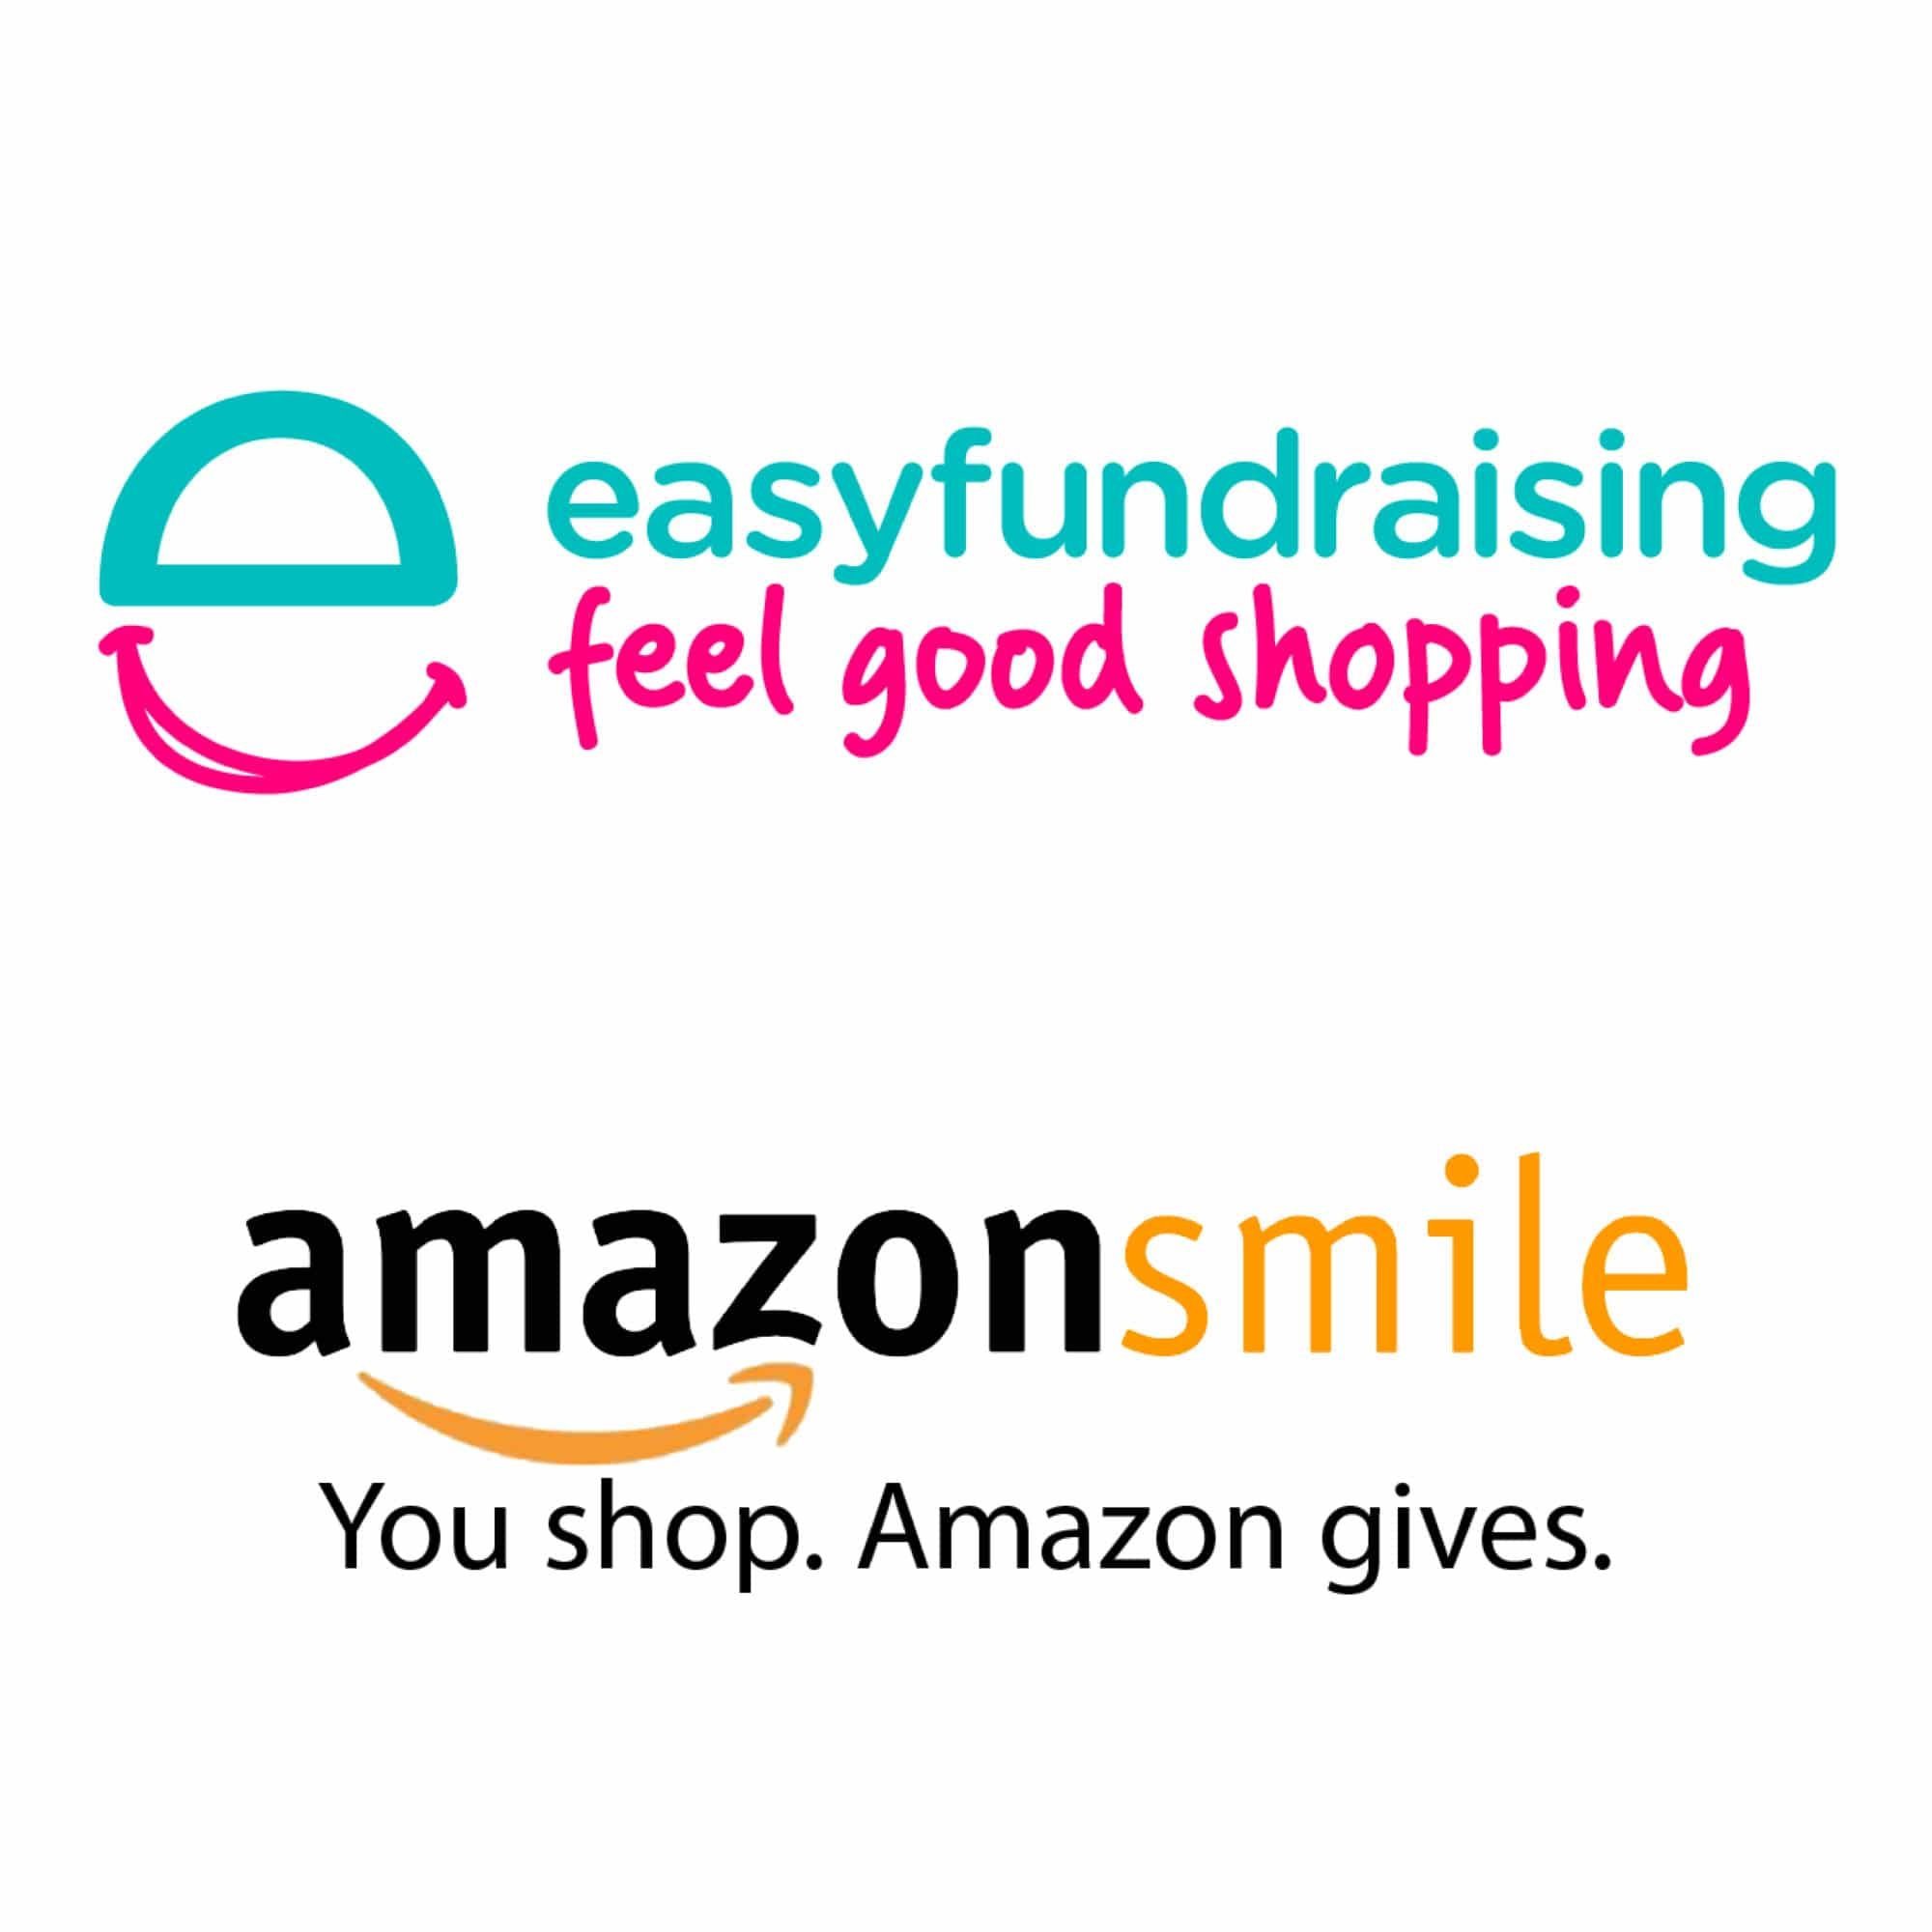 Image shows the 'easy fundraising - feel good shopping' and 'amazonsmile - You Shop. Amazon Gives' logos